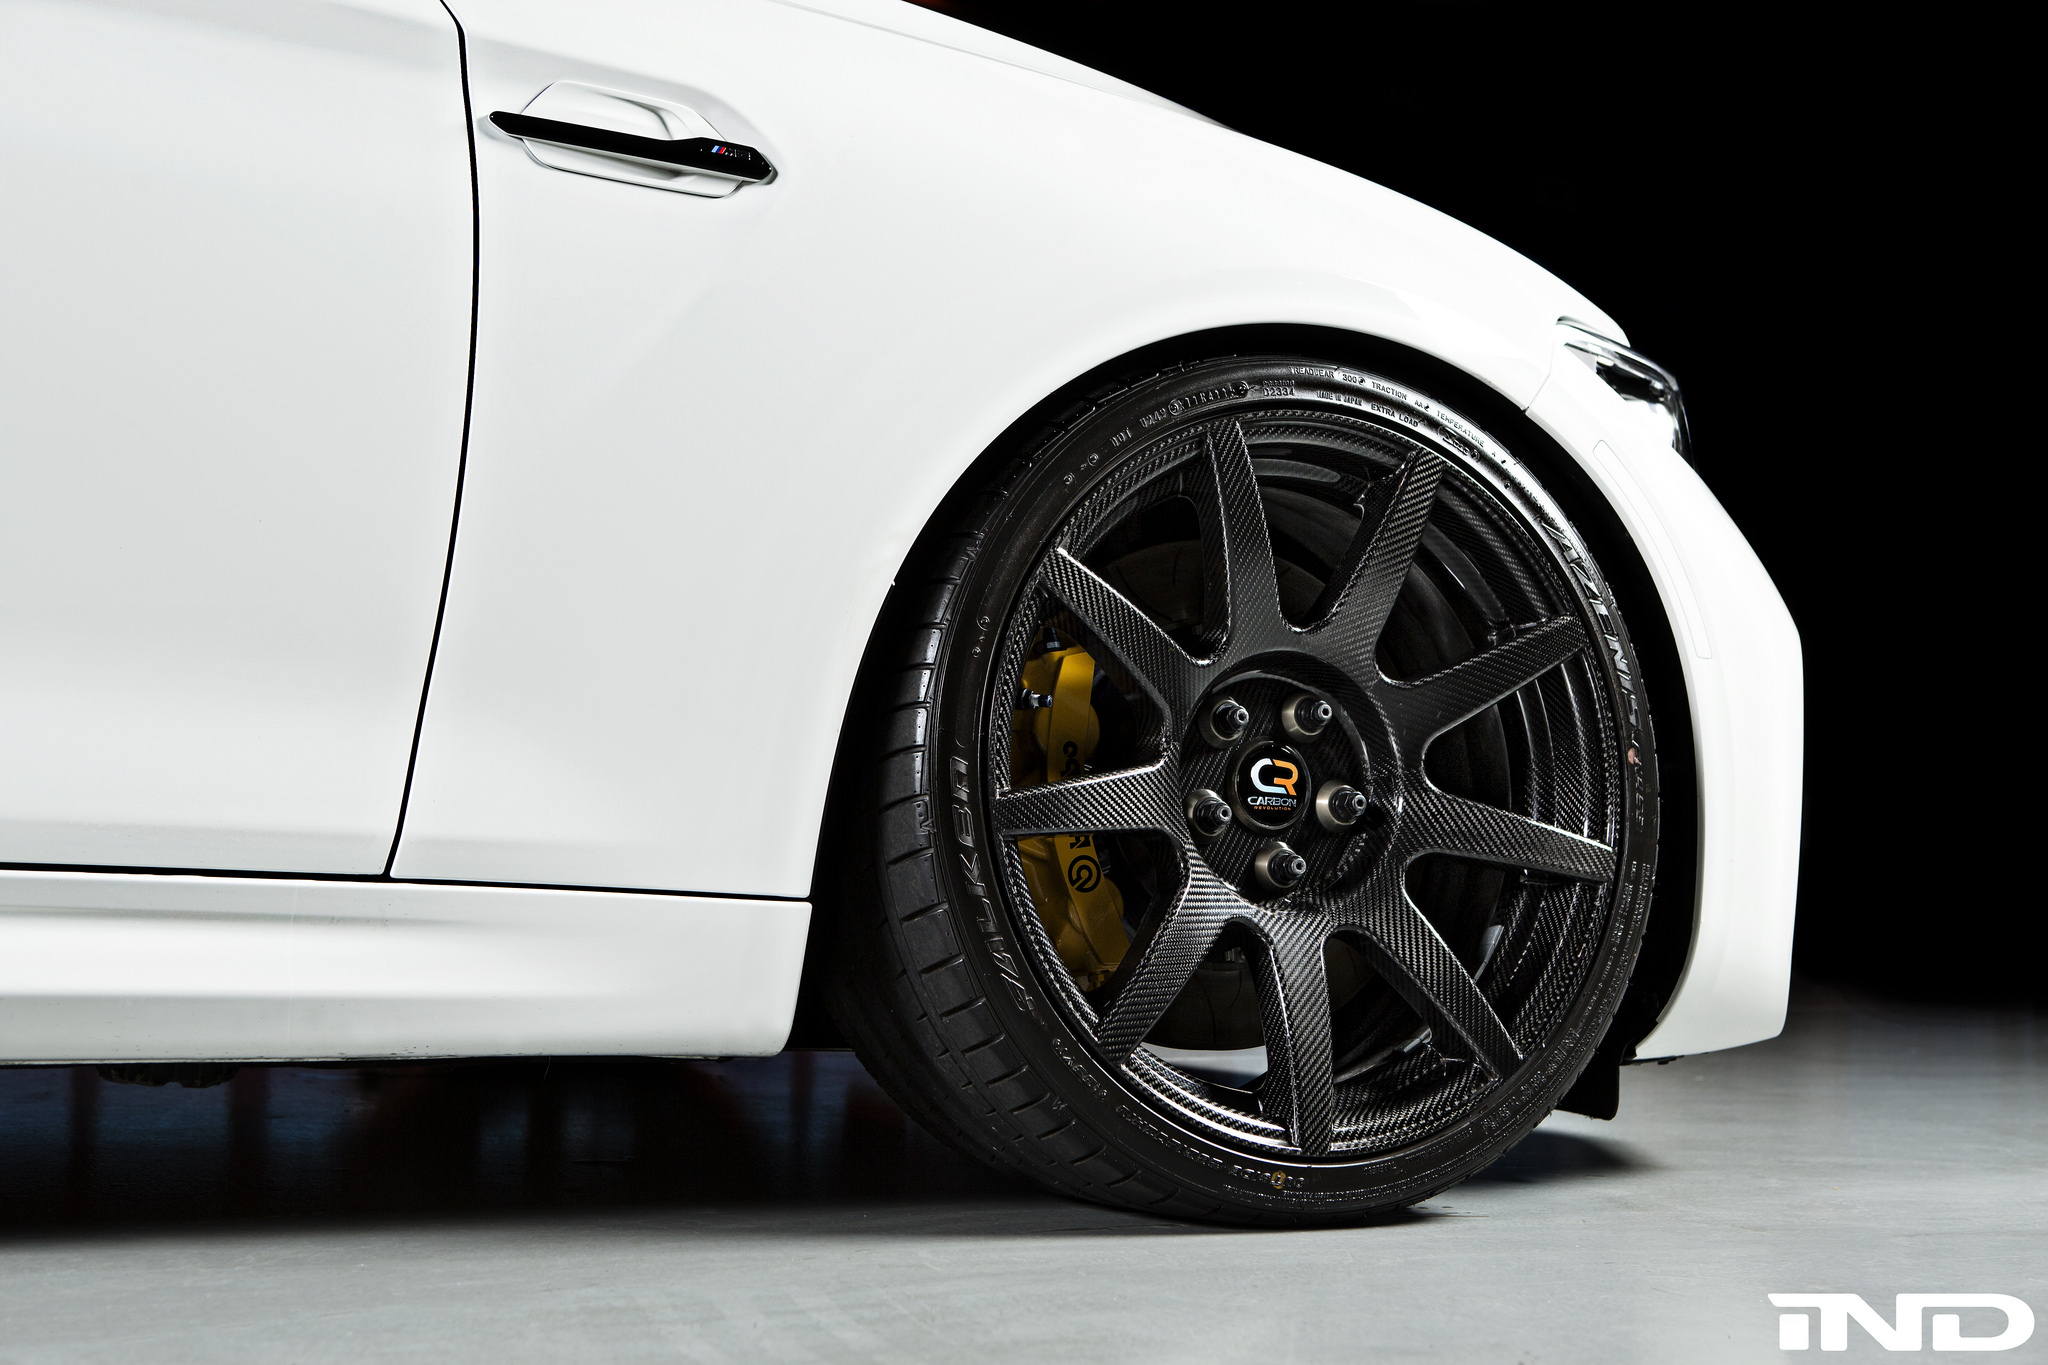 Bmw M2 Upgraded With Carbon Fiber Wheels 5 750x500